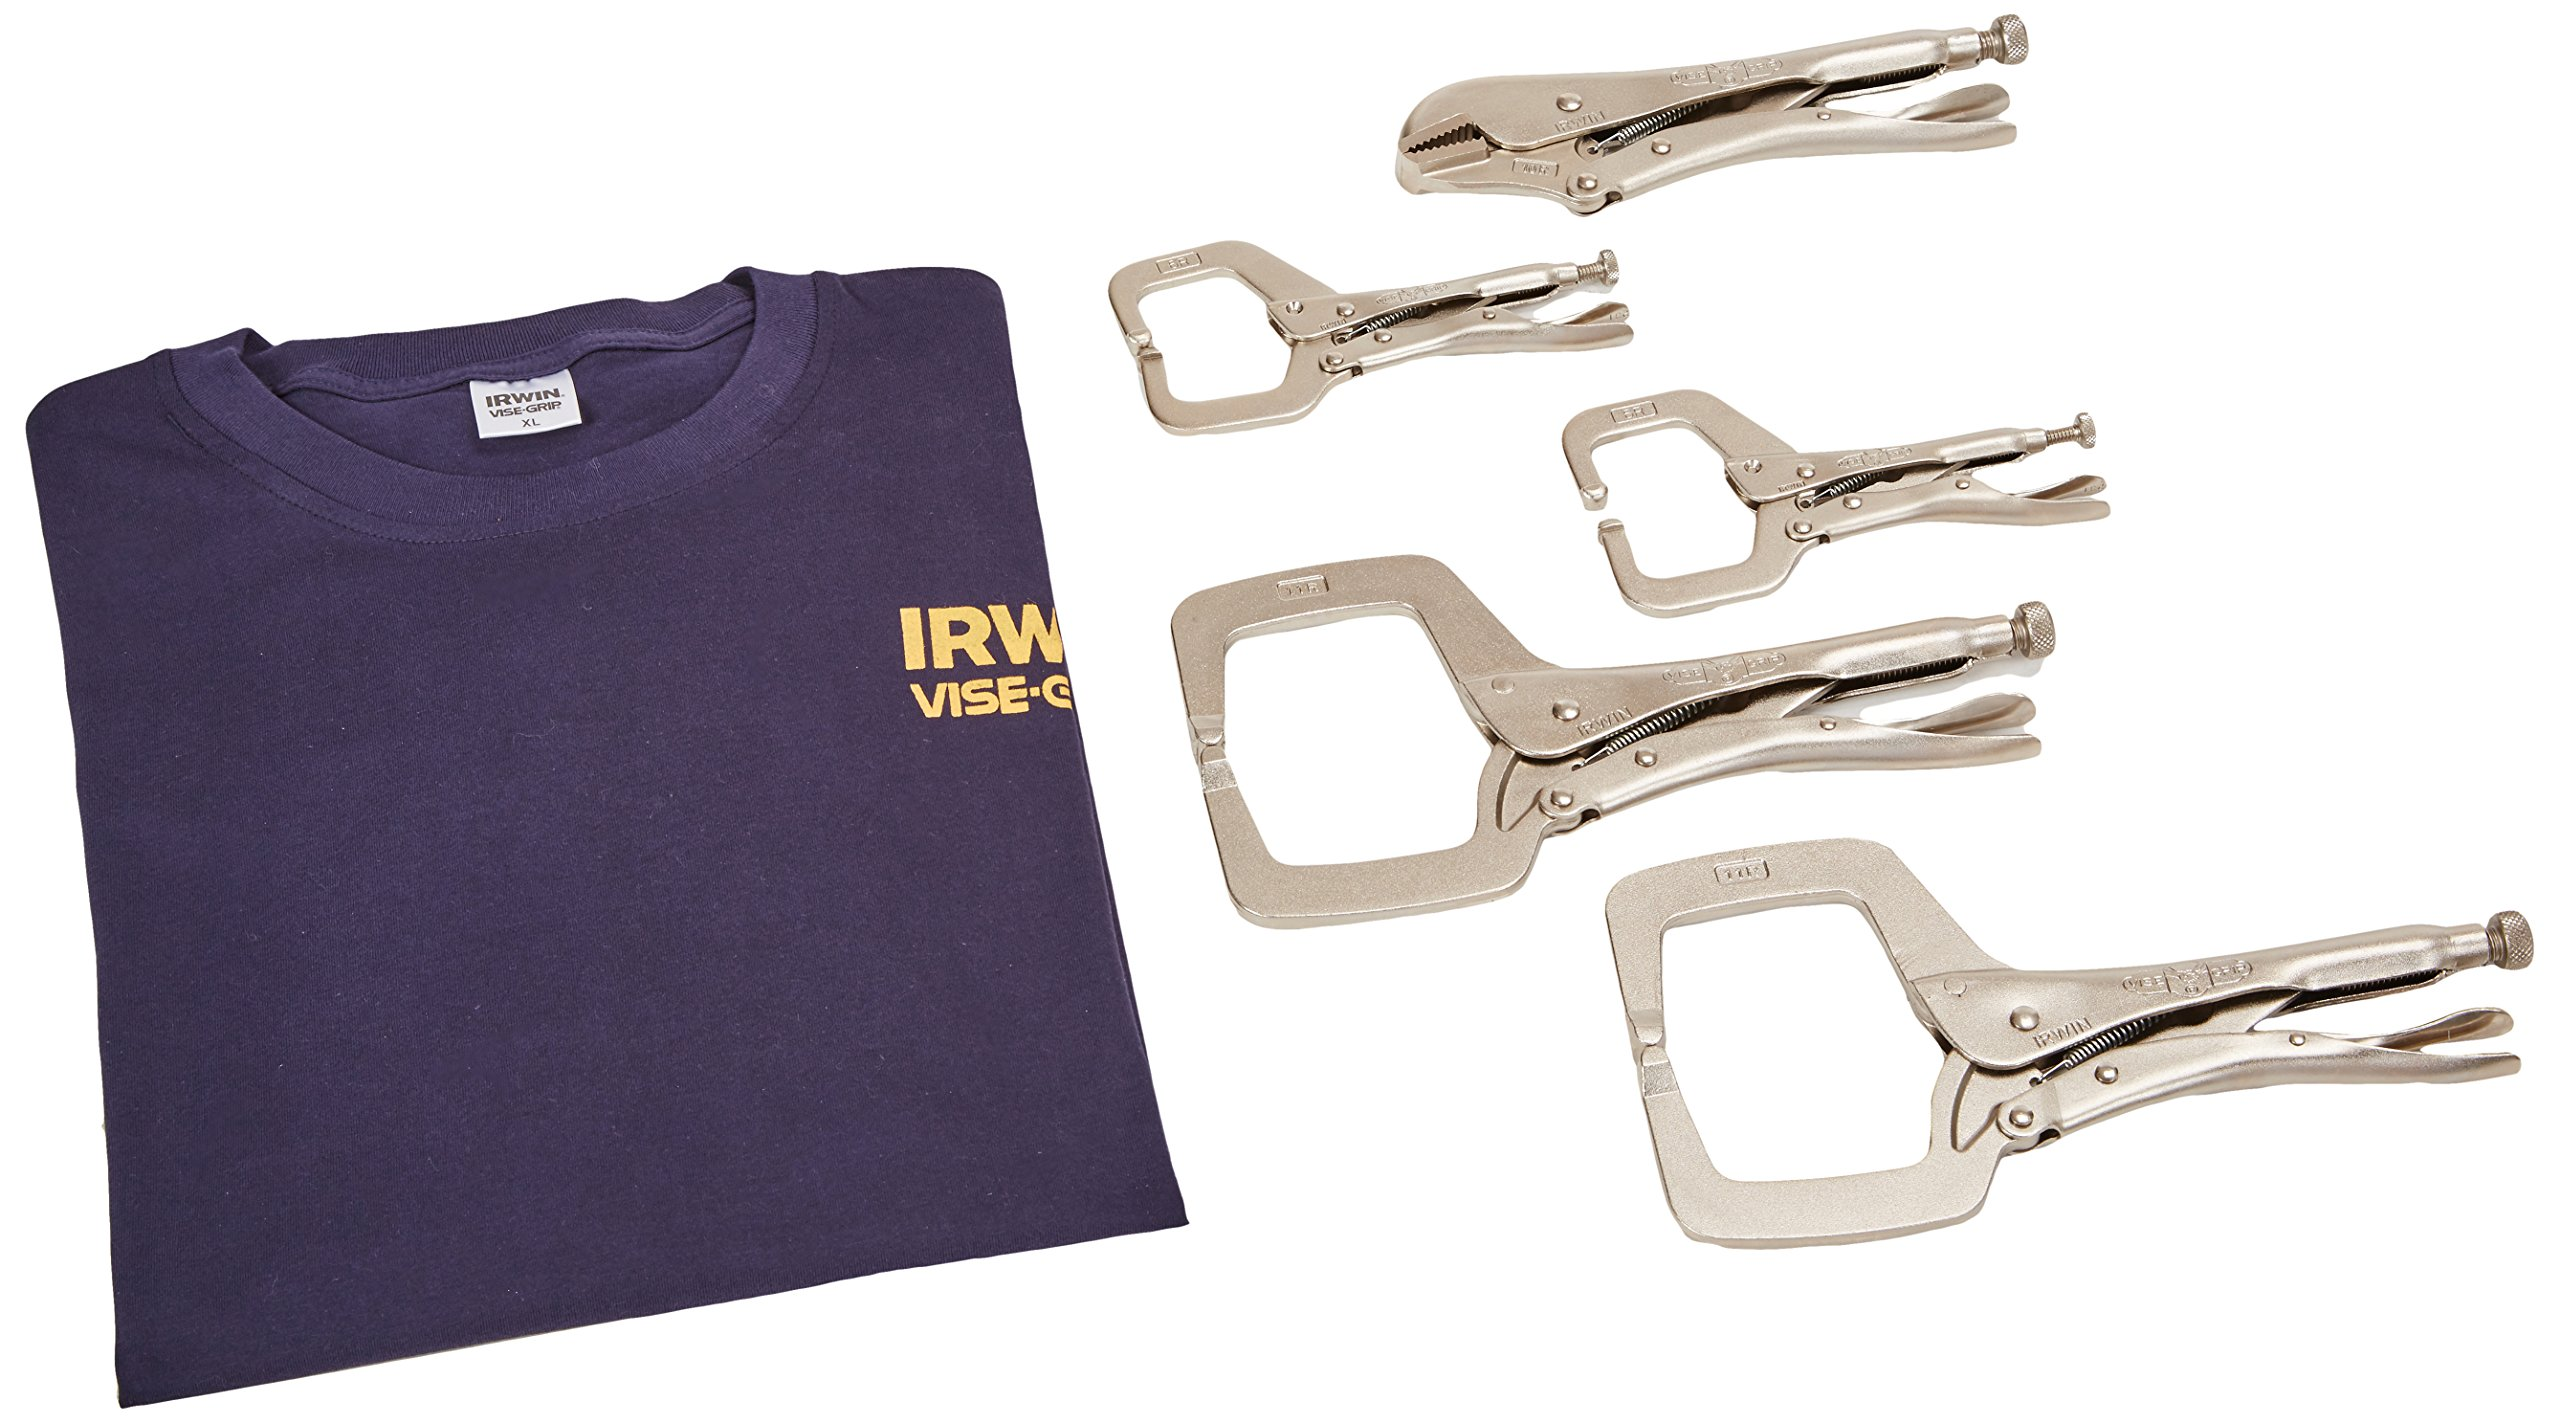 Irwin Industrial Tools 74D Vise-Grip Locking Tool Set with Free T-Shirt, 5-Piece by Irwin Tools